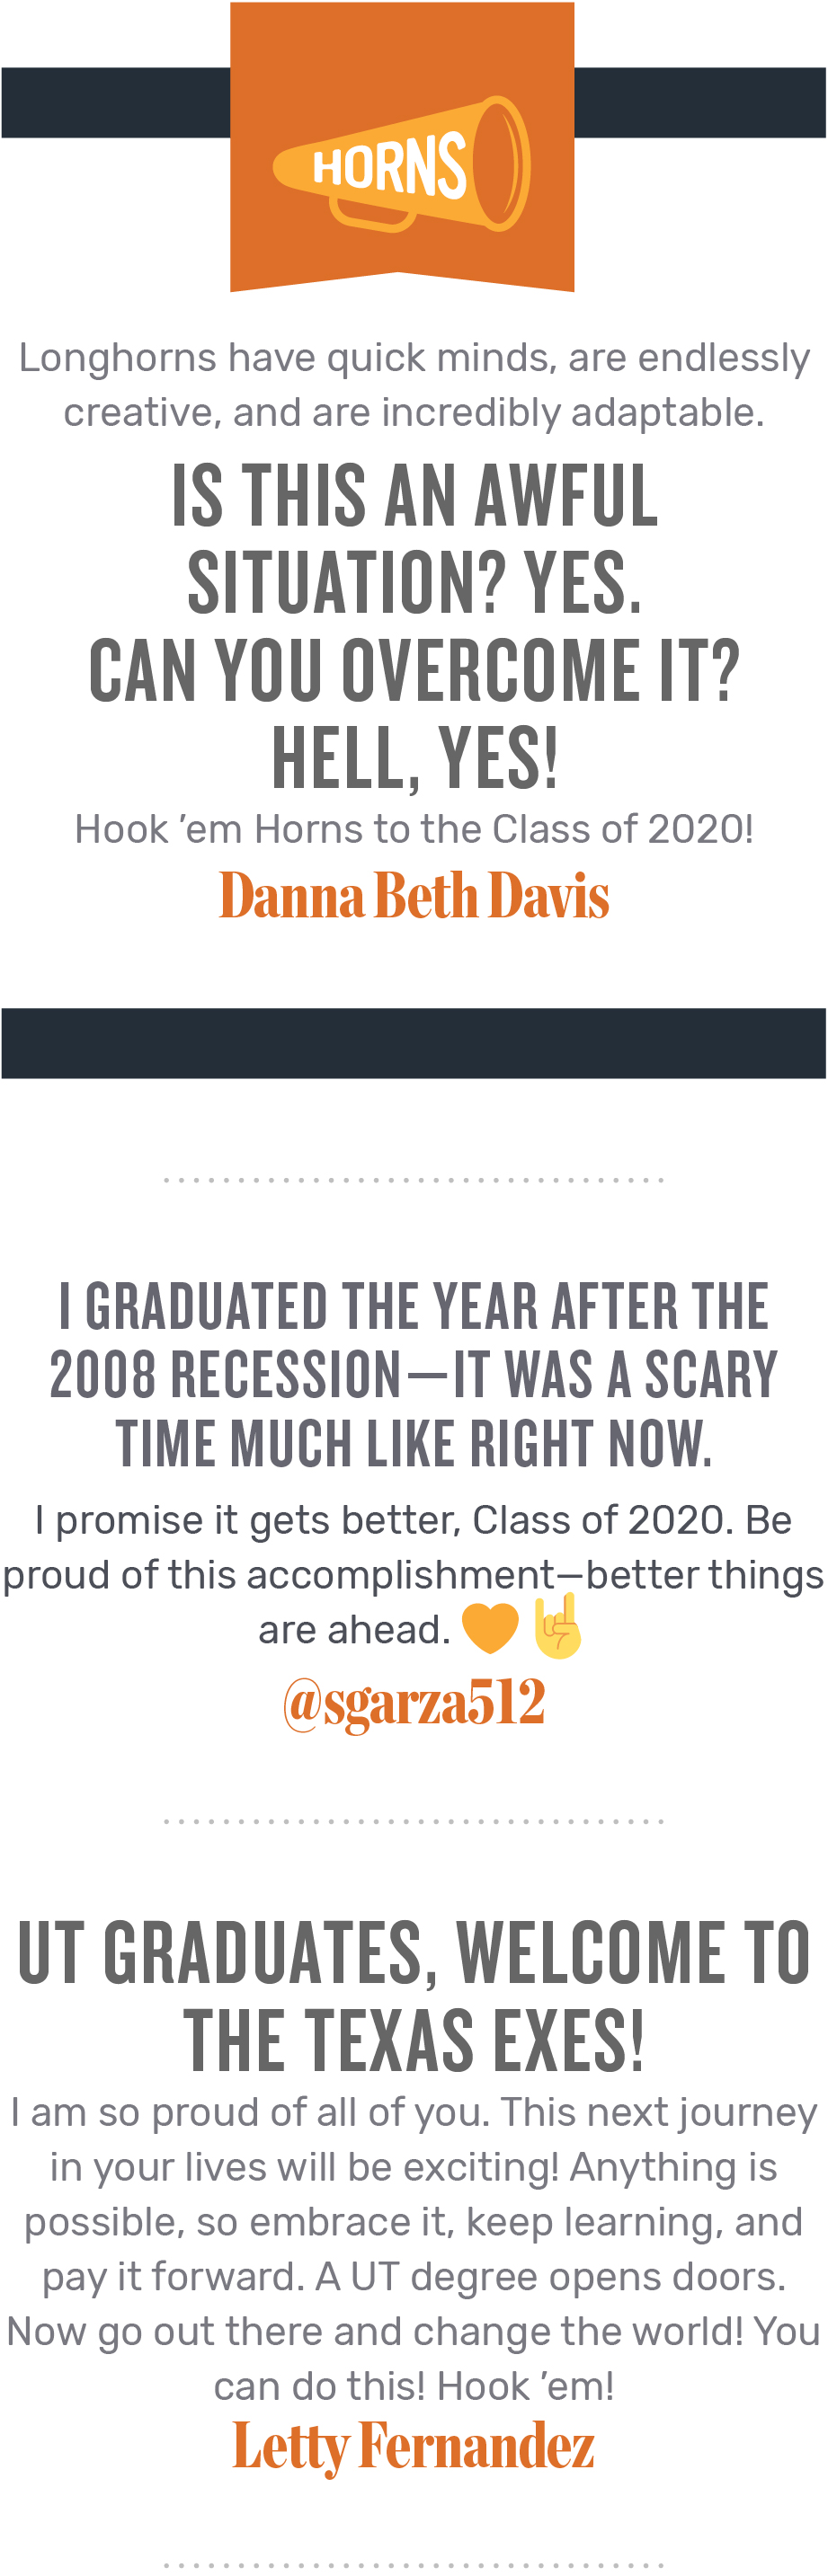 Messages for the Class of 2020